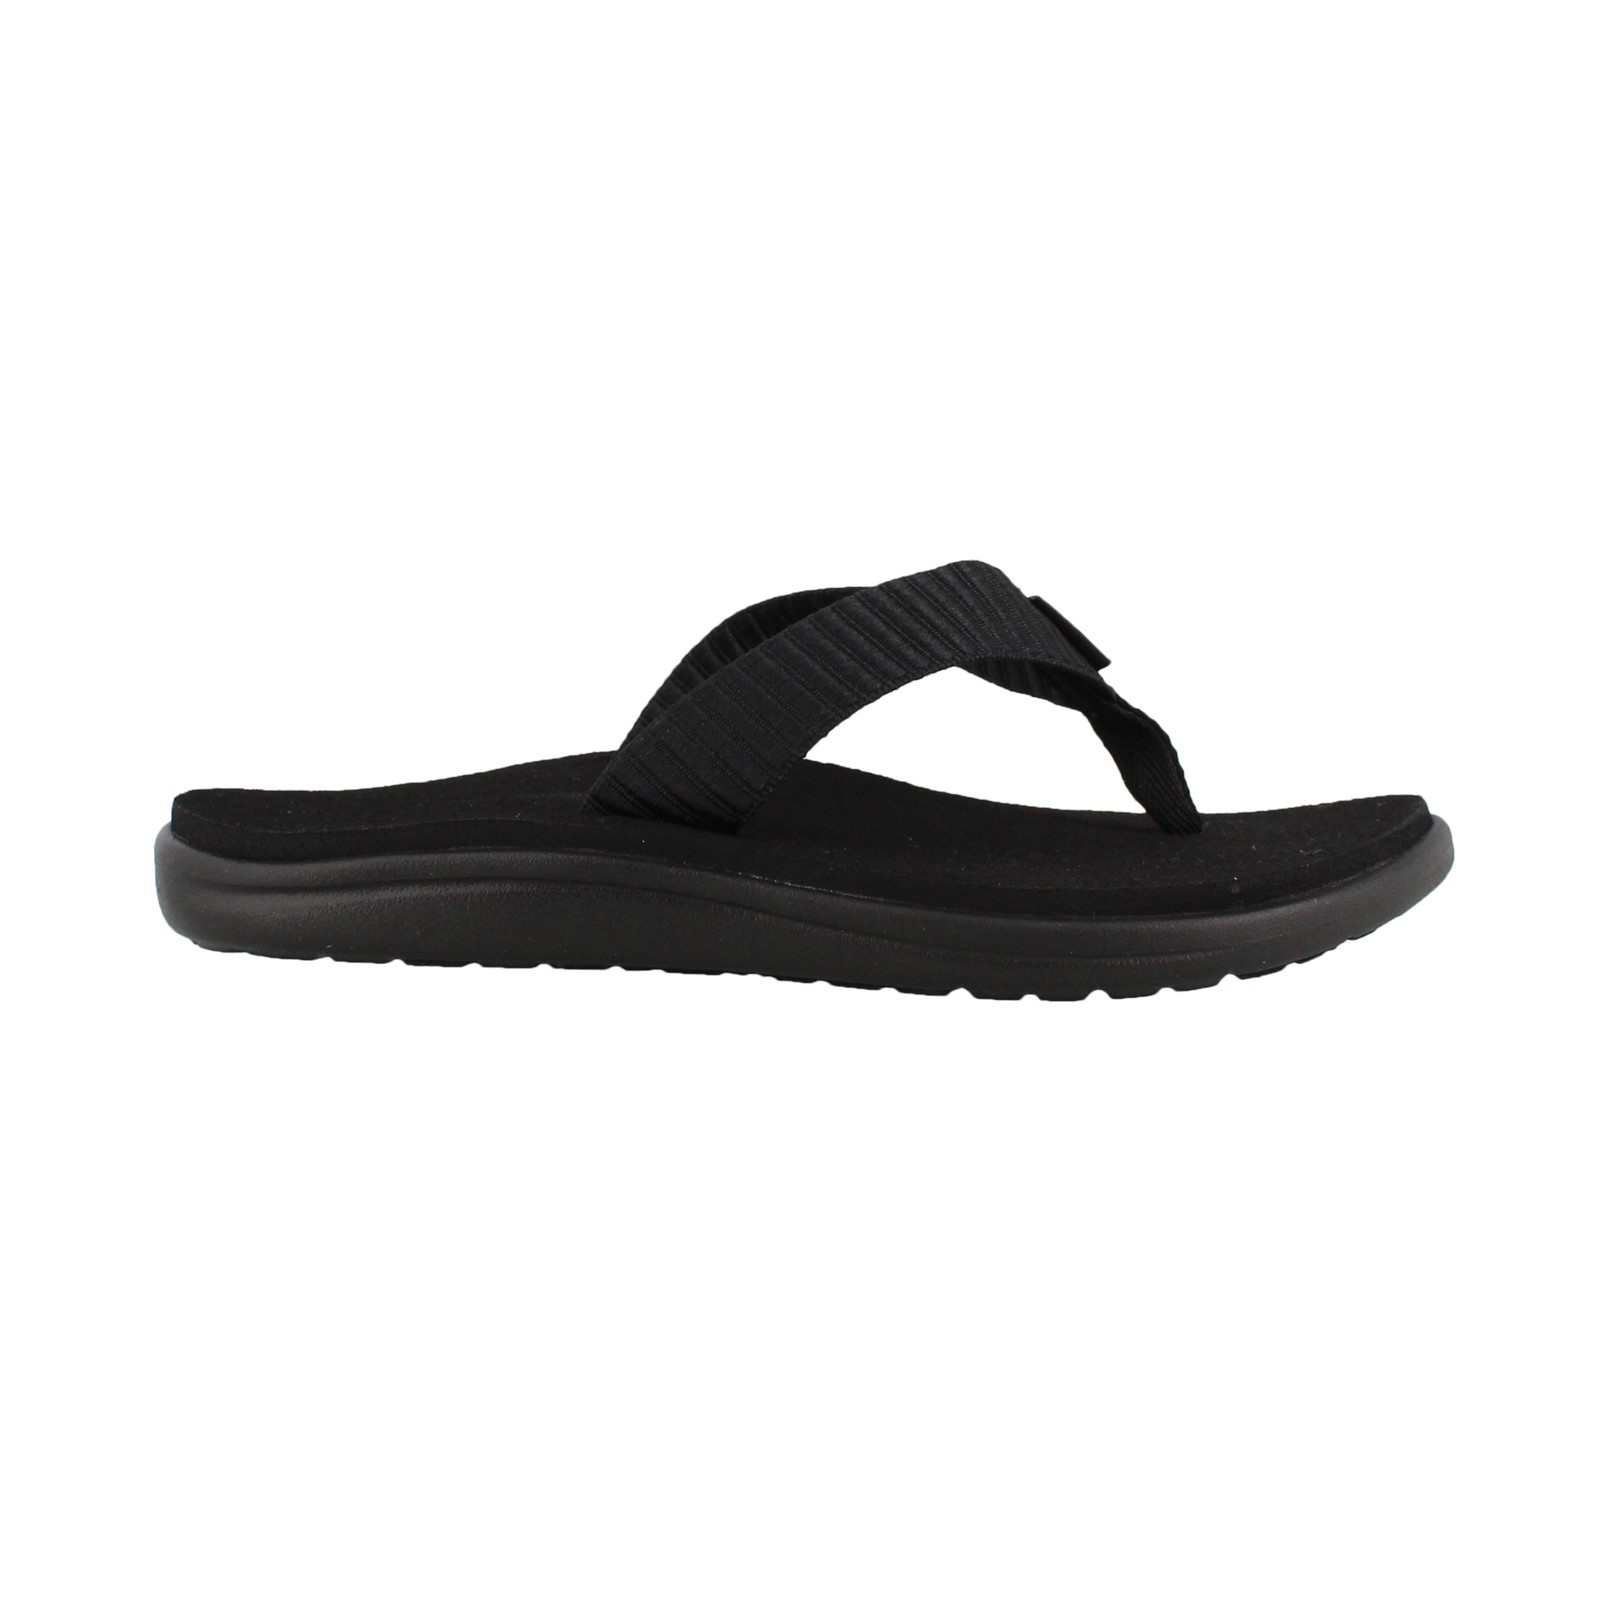 Women's Teva, Voya Flip Thong Sandals